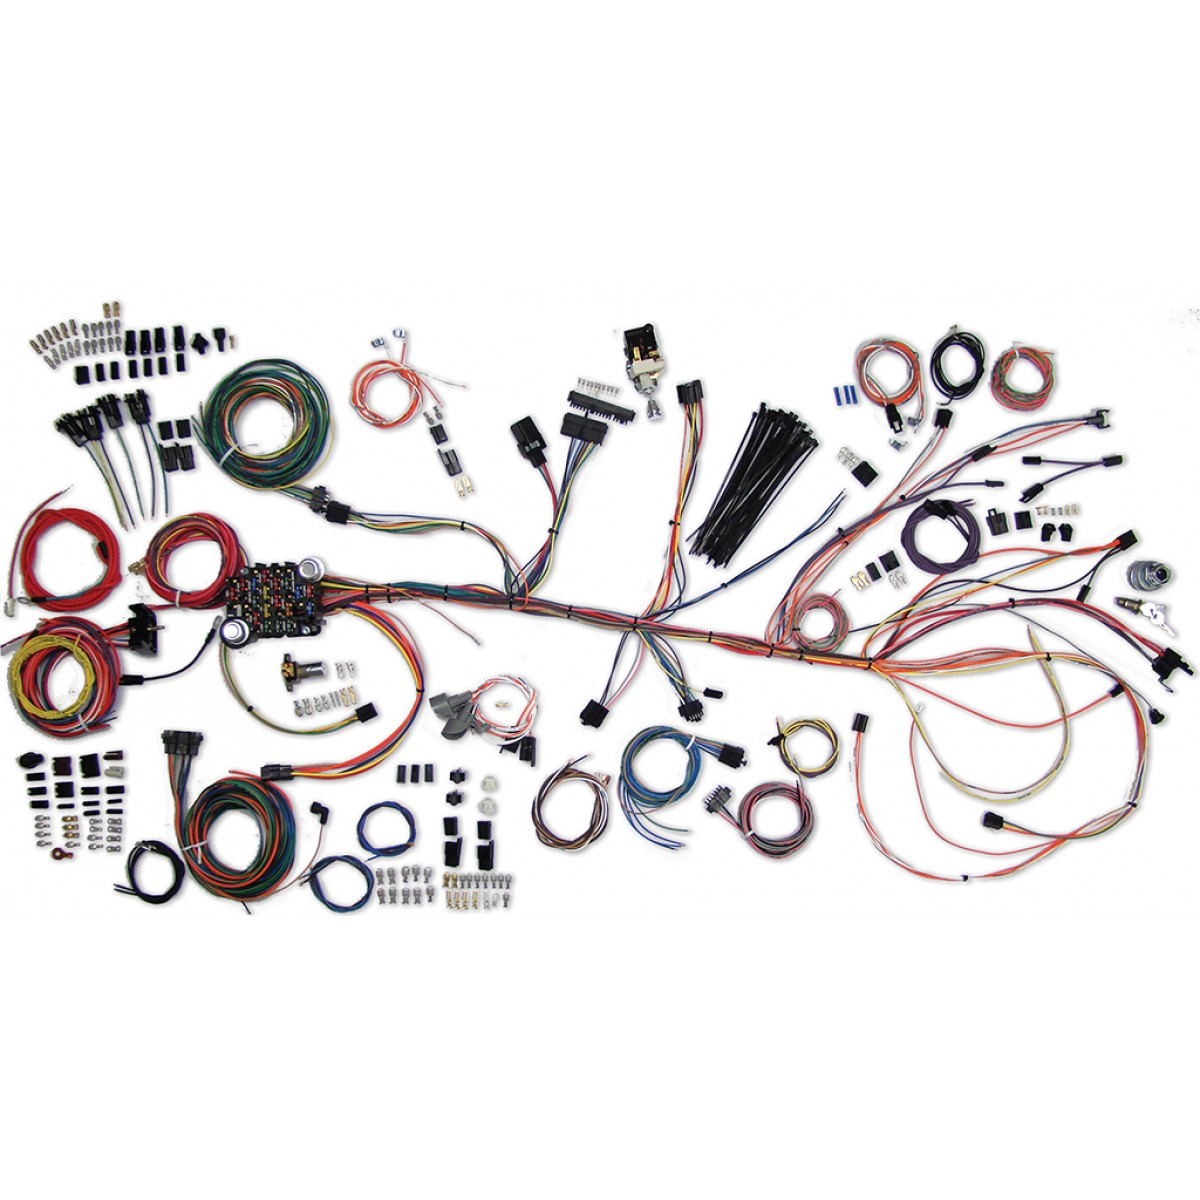 1964 1967 El Camino Wiring Harness Kit Part 1968 Camaro Stearing Column Diagram Complete 500981